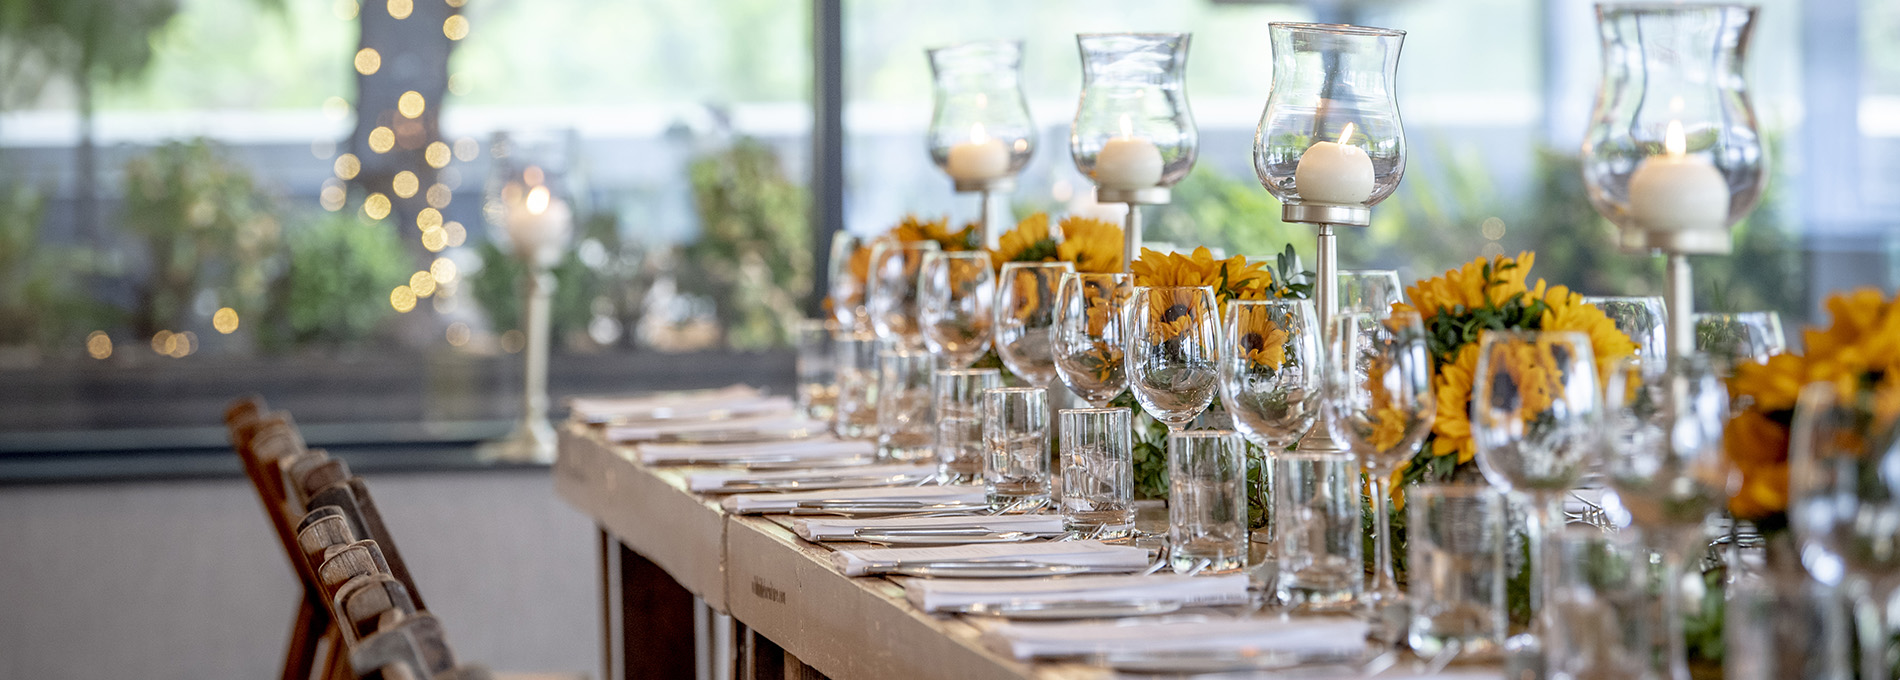 Long table set for dinner with sunflowers and candles